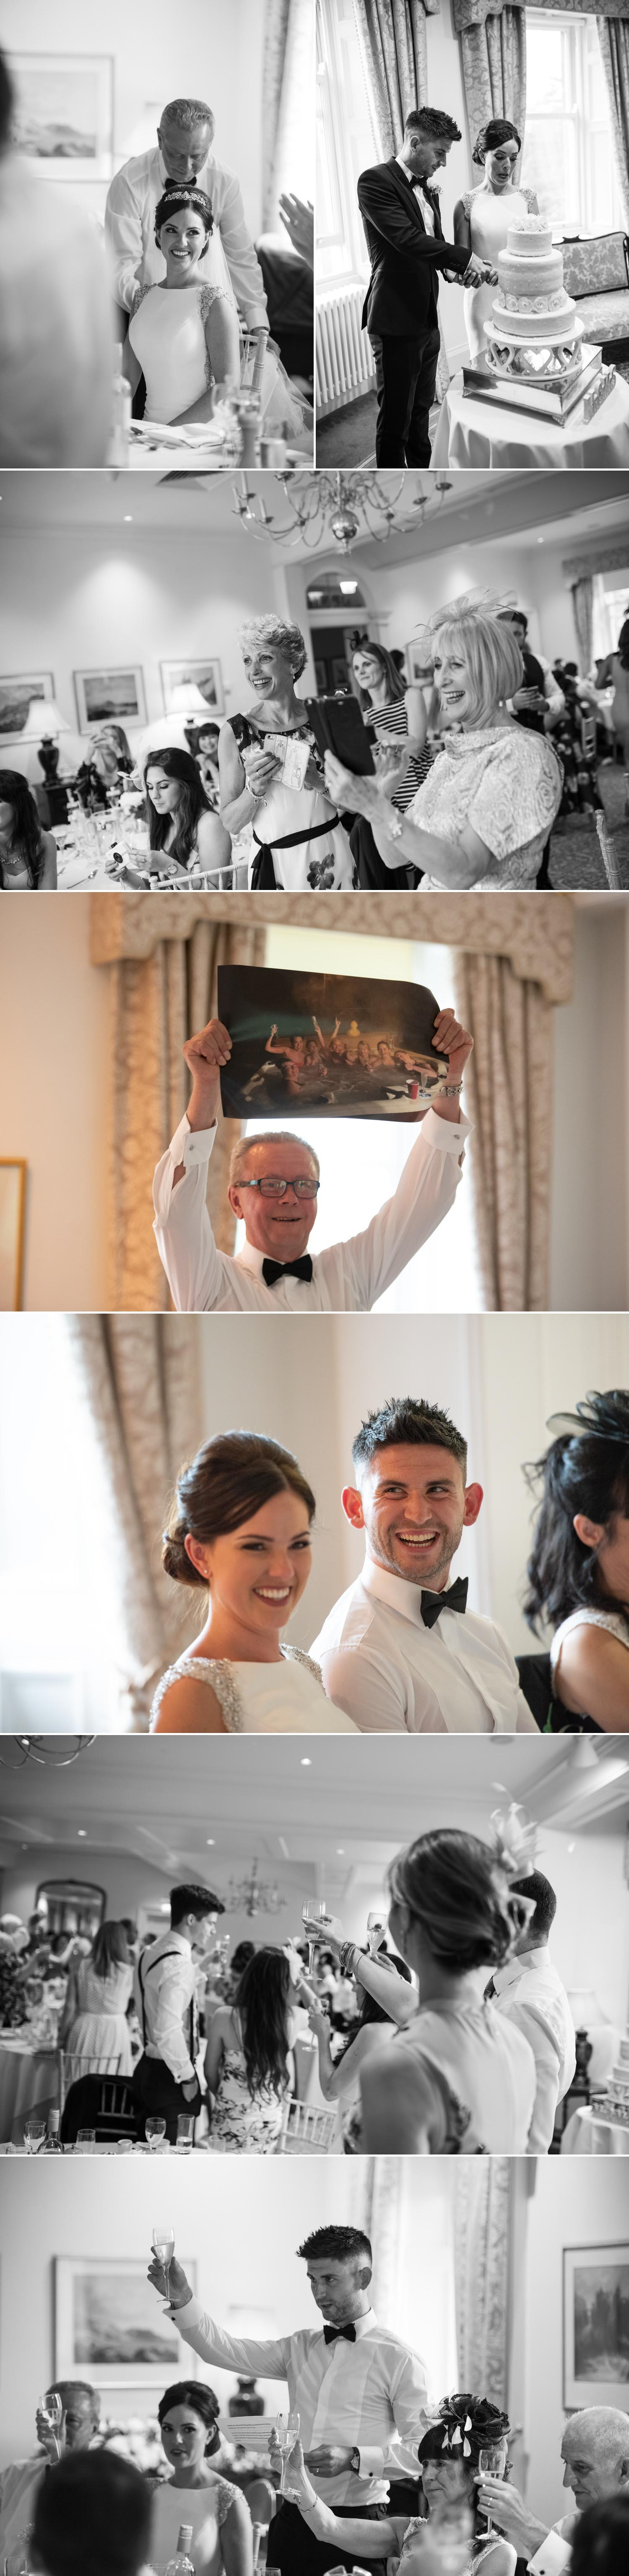 Cultra Manor Wedding Bangor 17.jpg